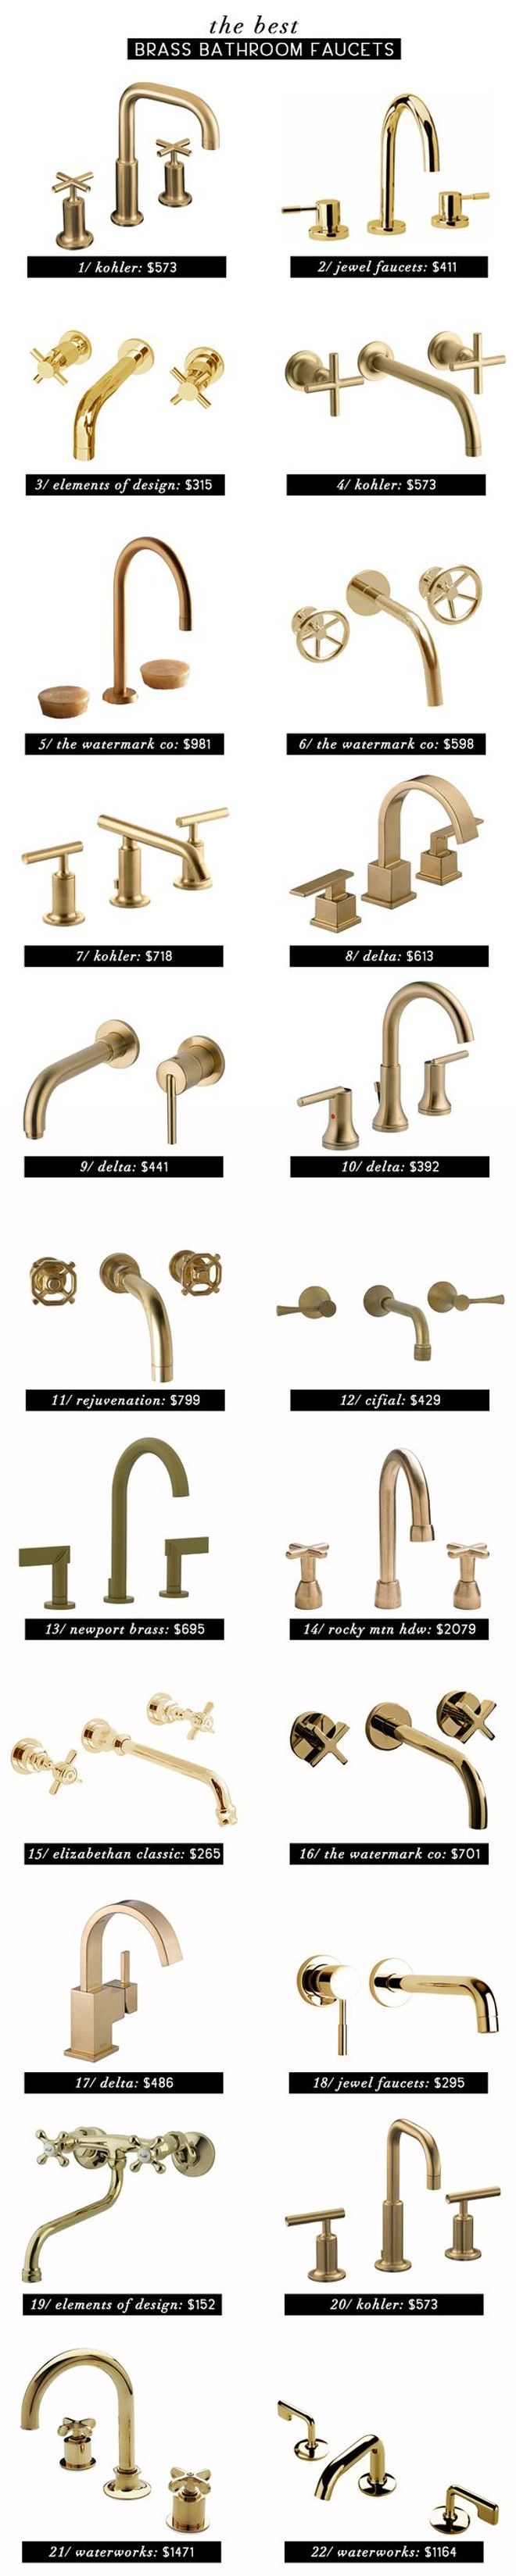 Bathroom Faucet Fittings top 25+ best brass faucet ideas on pinterest | faucet, brass tap